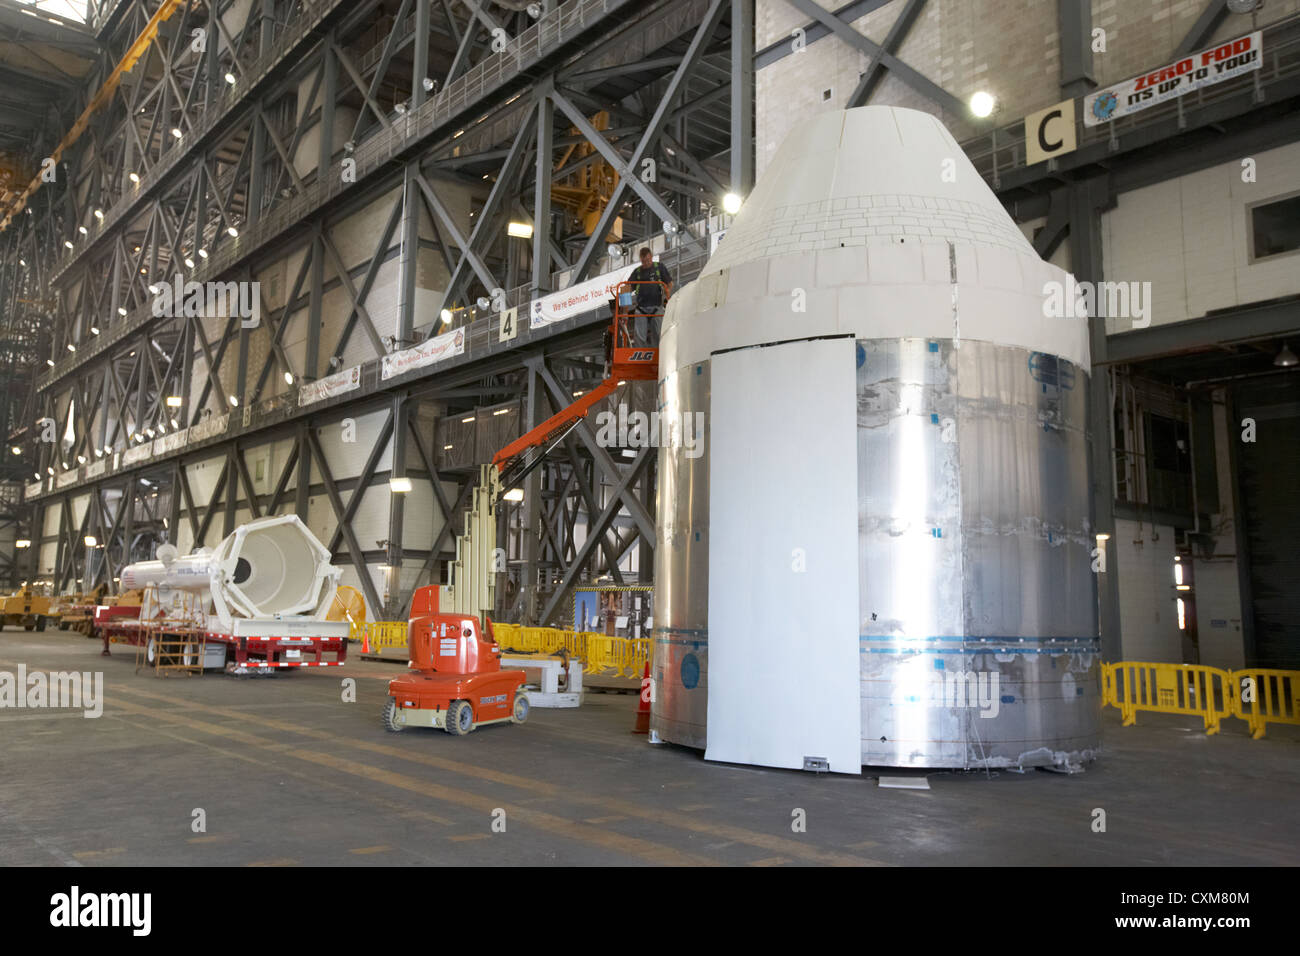 worker works on mockup of the nasa orion command and service modules Kennedy Space Center Florida USA - Stock Image